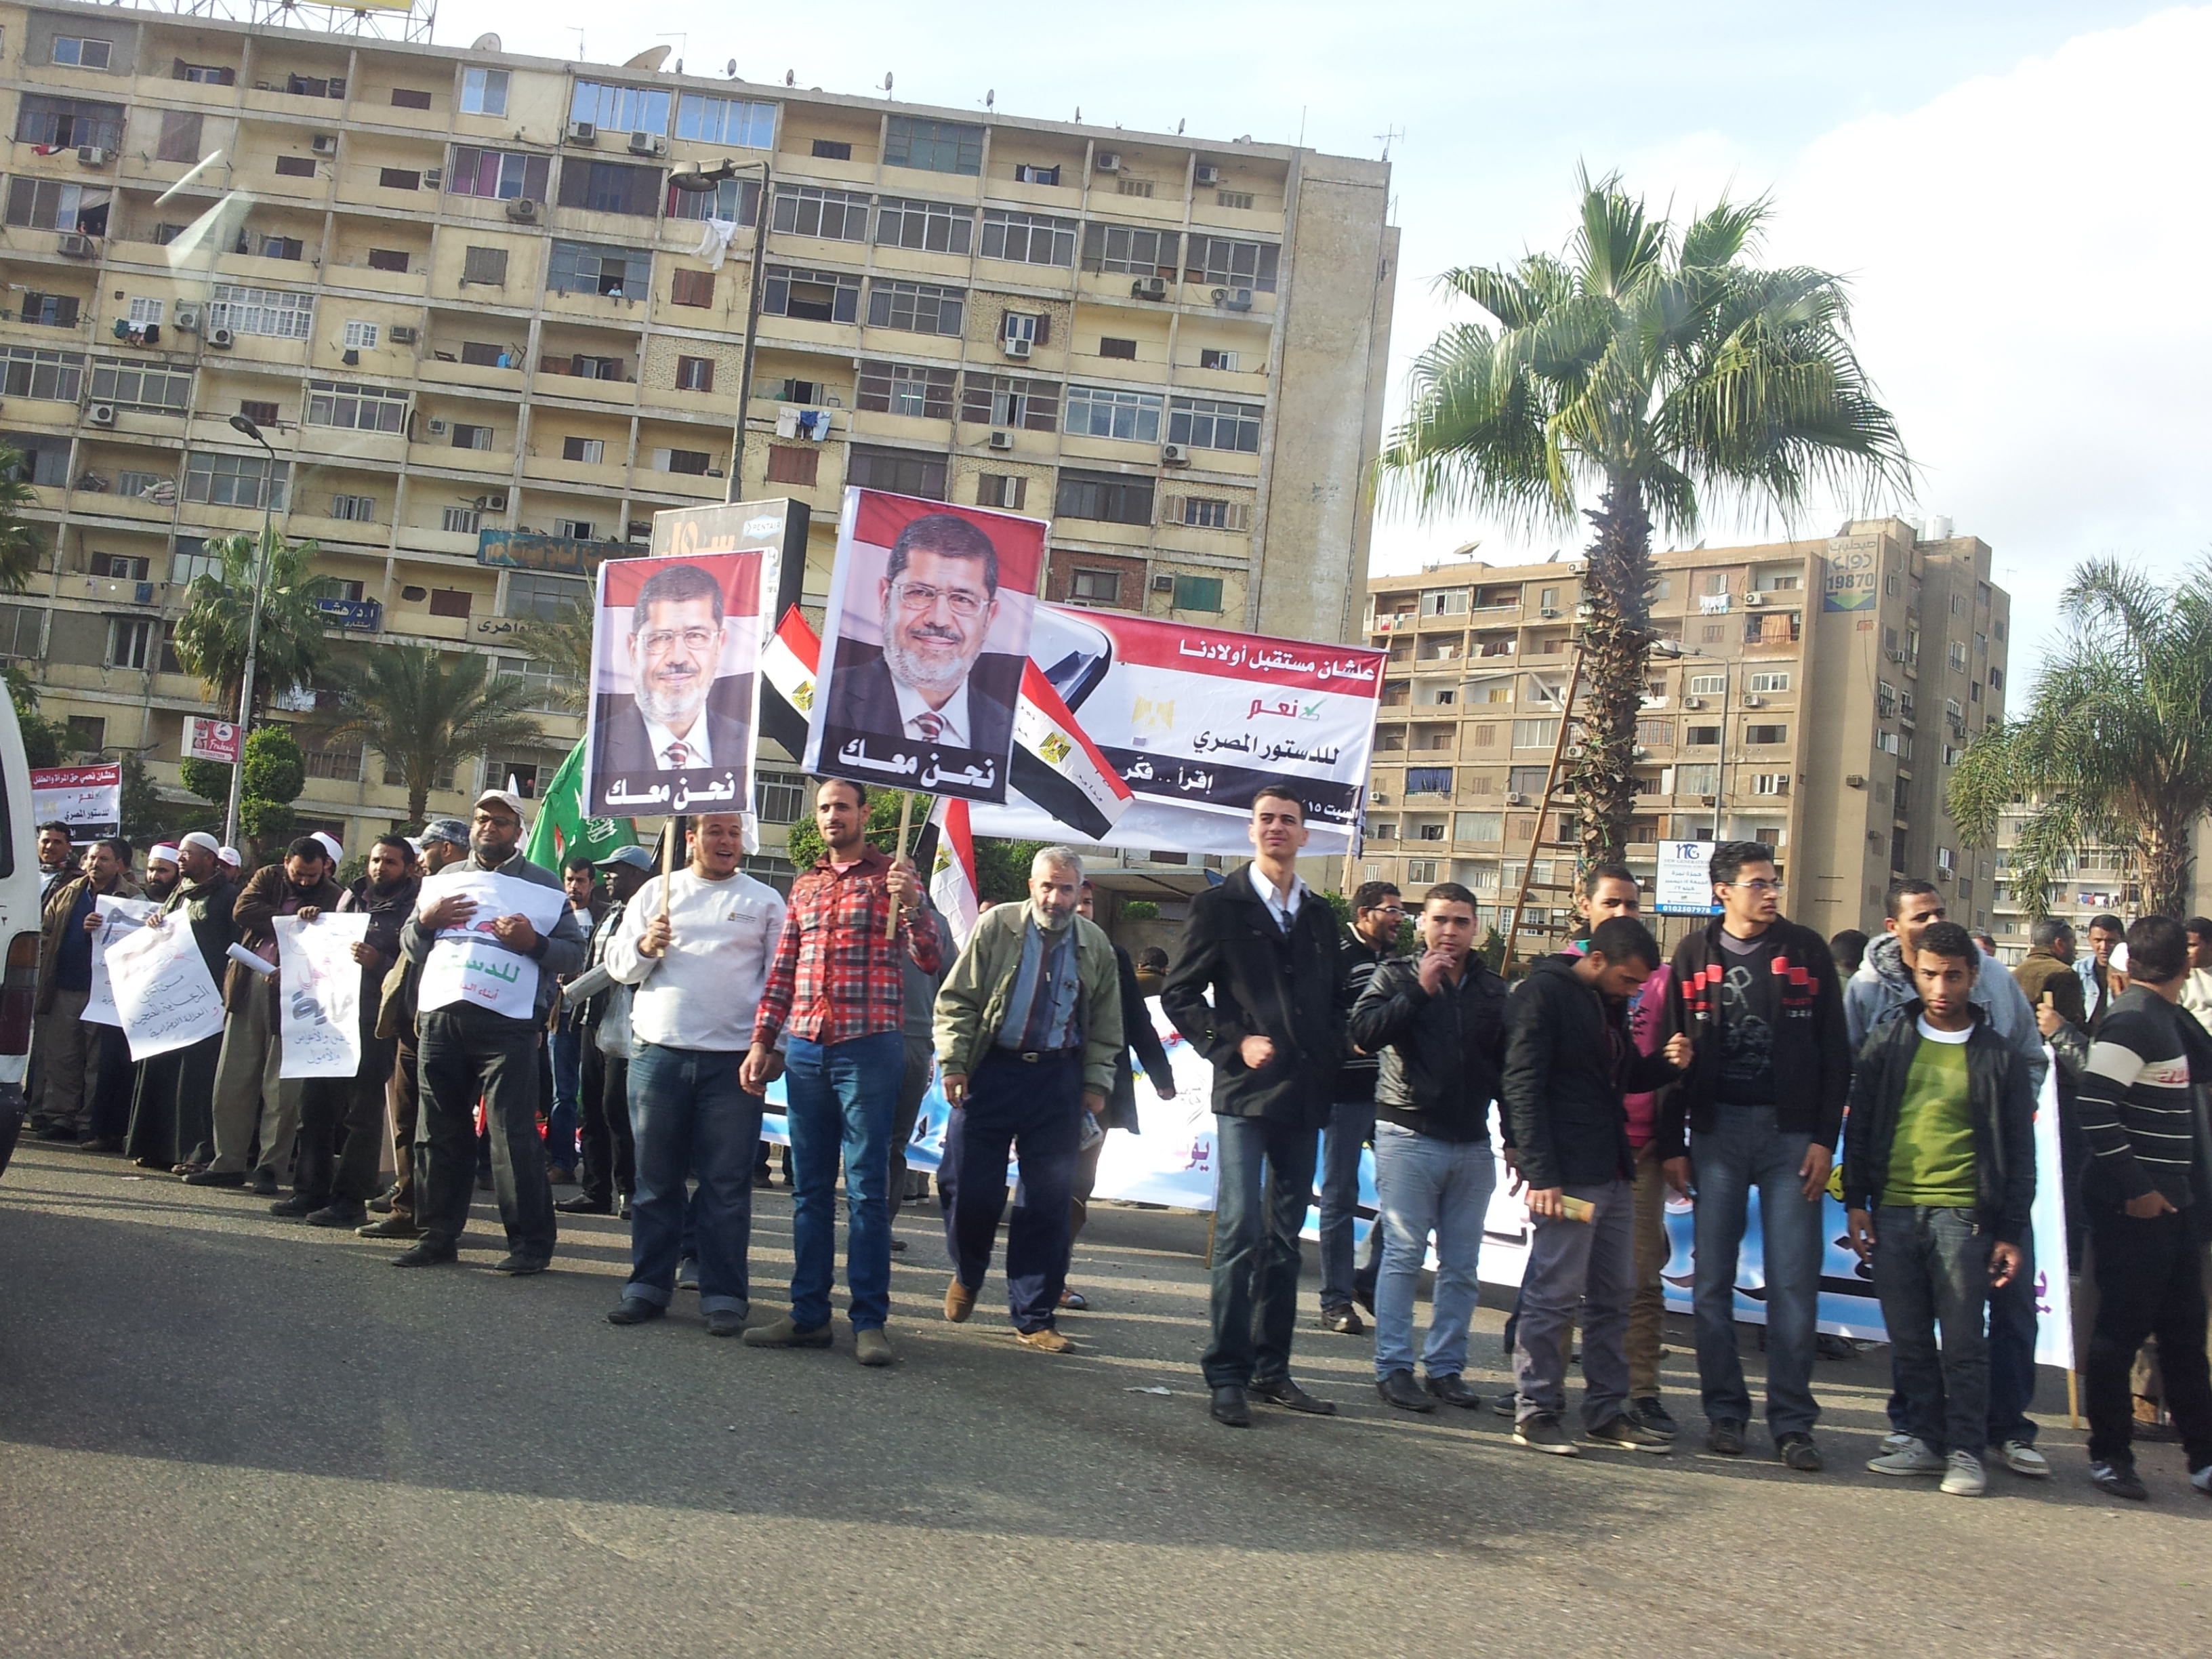 Pro-Morsi supporters at Rabaa Al Adaweya at around 2 p.m.